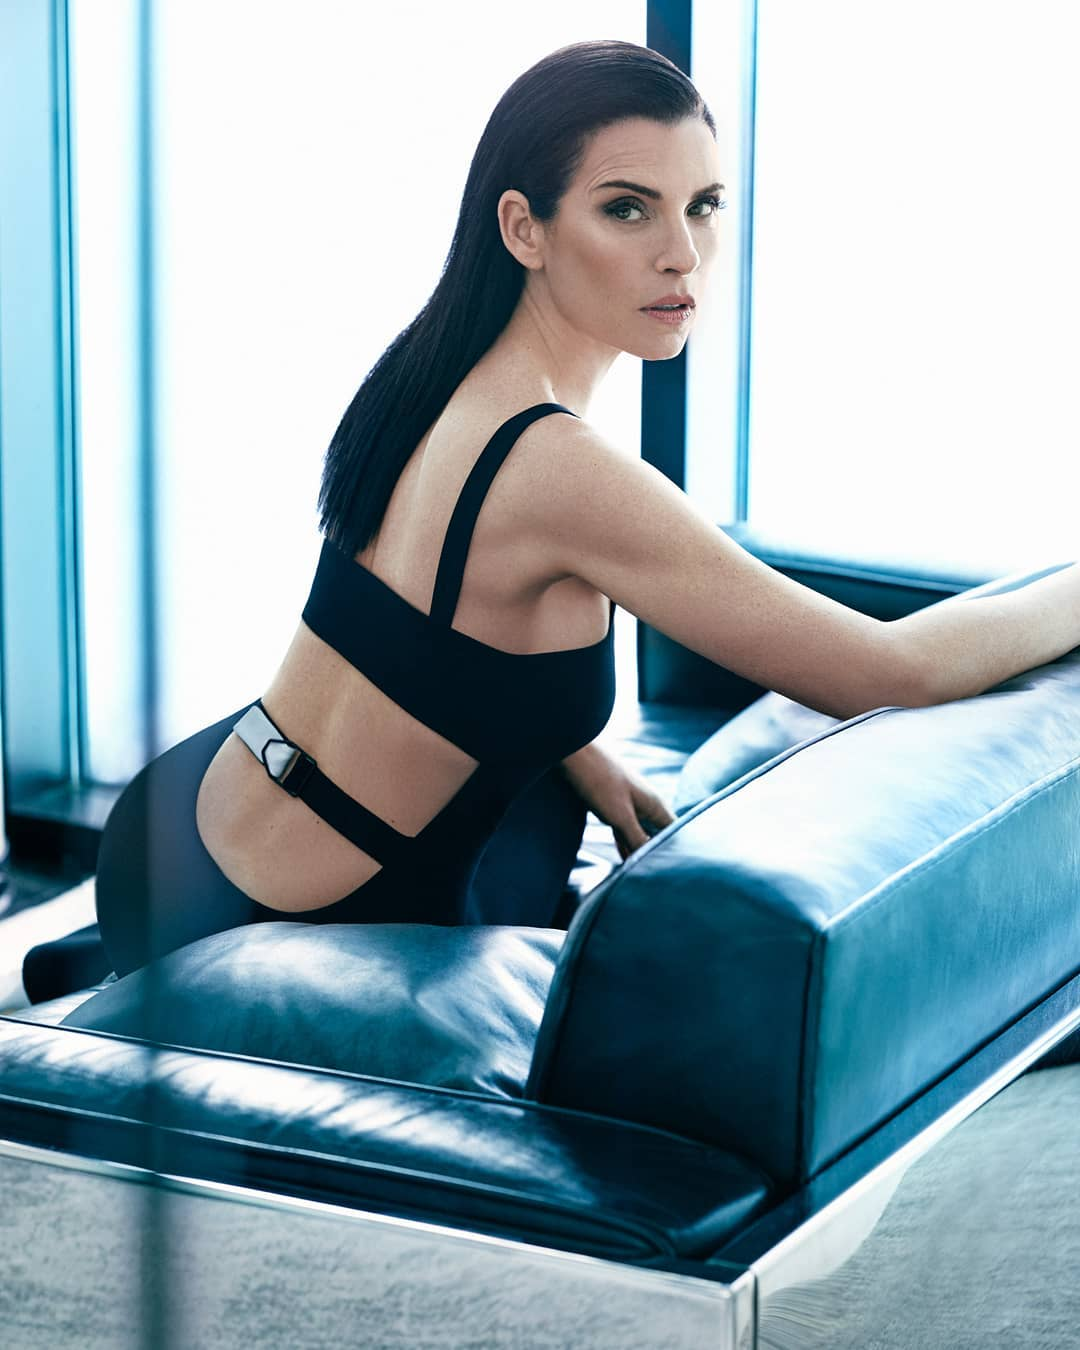 Julianna Margulies Hot Photoshoot